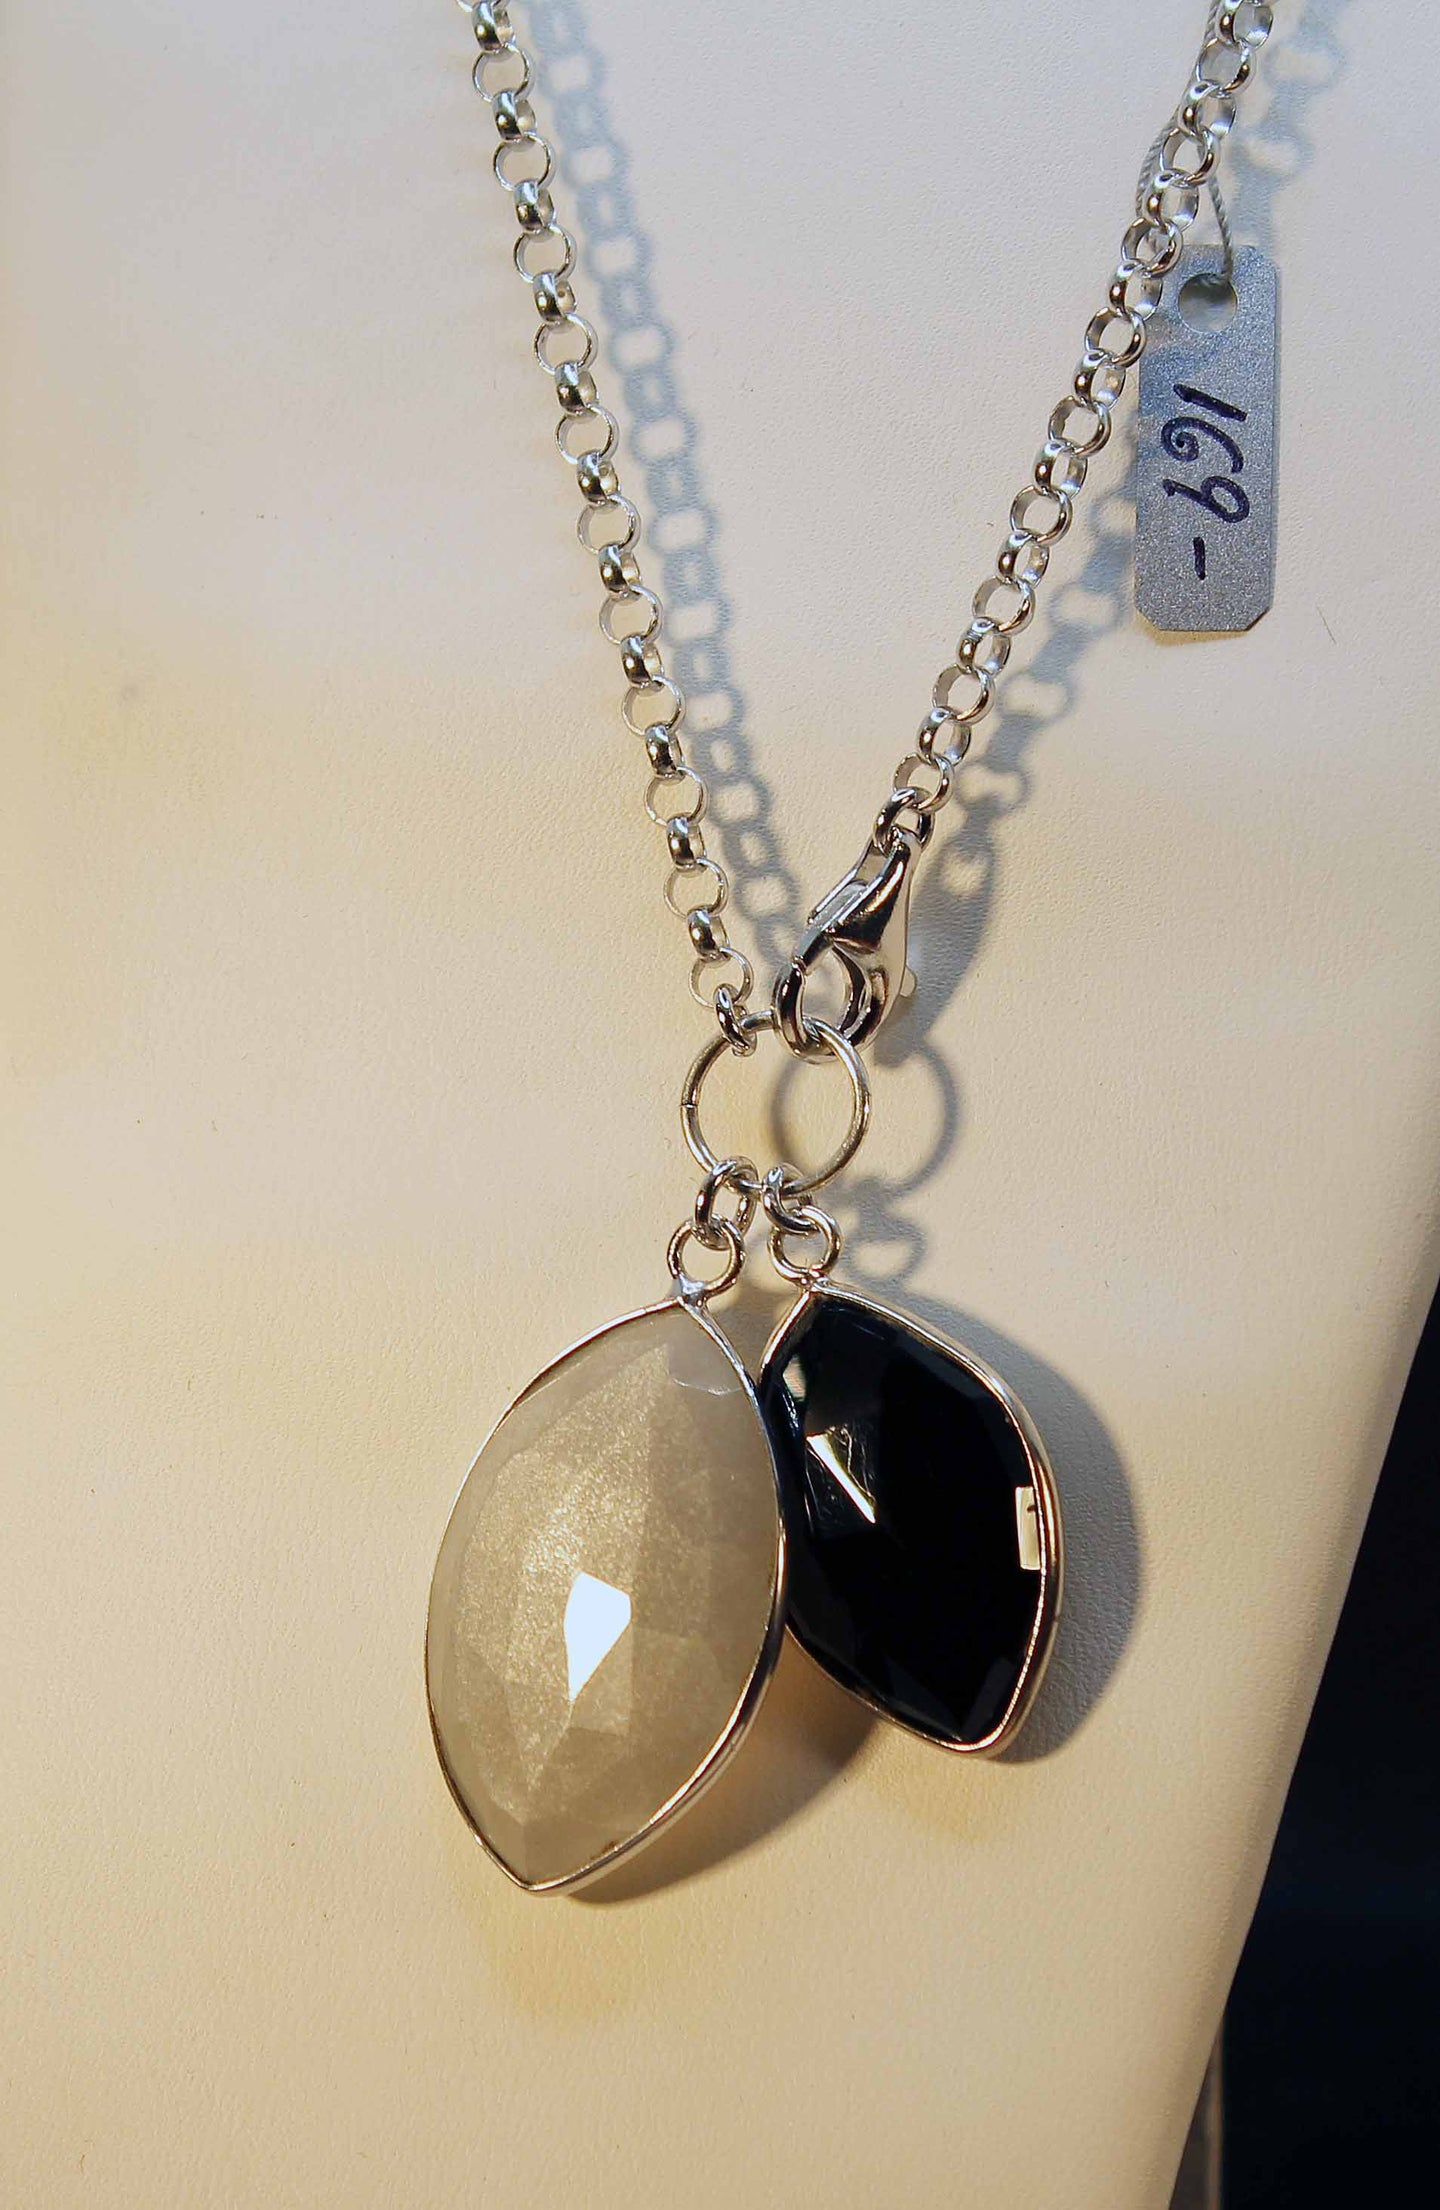 Sterling silver, rhodium finish necklace with grey moonstone and black onyx pendants